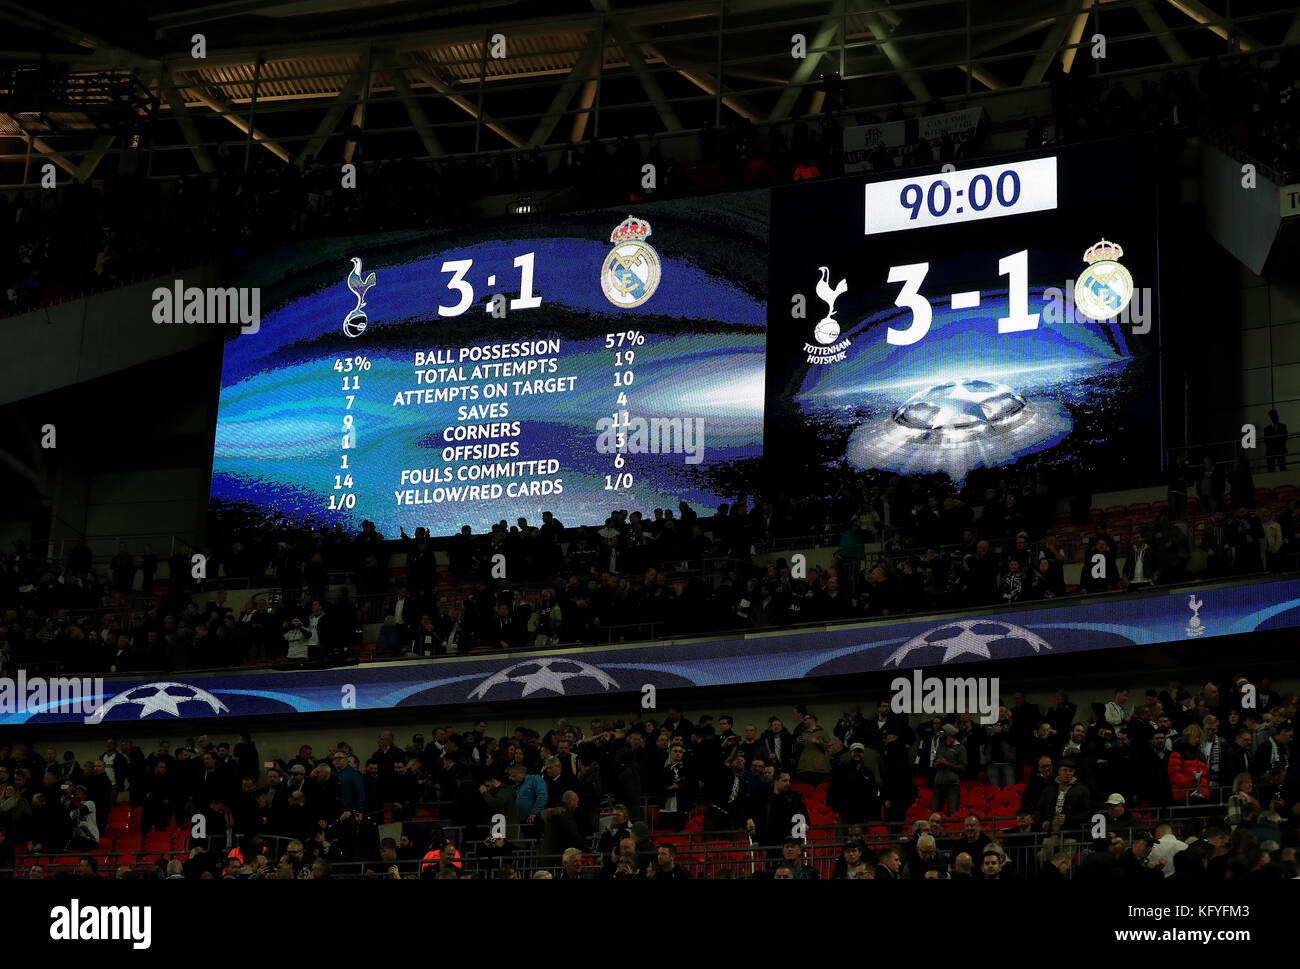 A General View Of The Scoreboard At Full Time During The Uefa